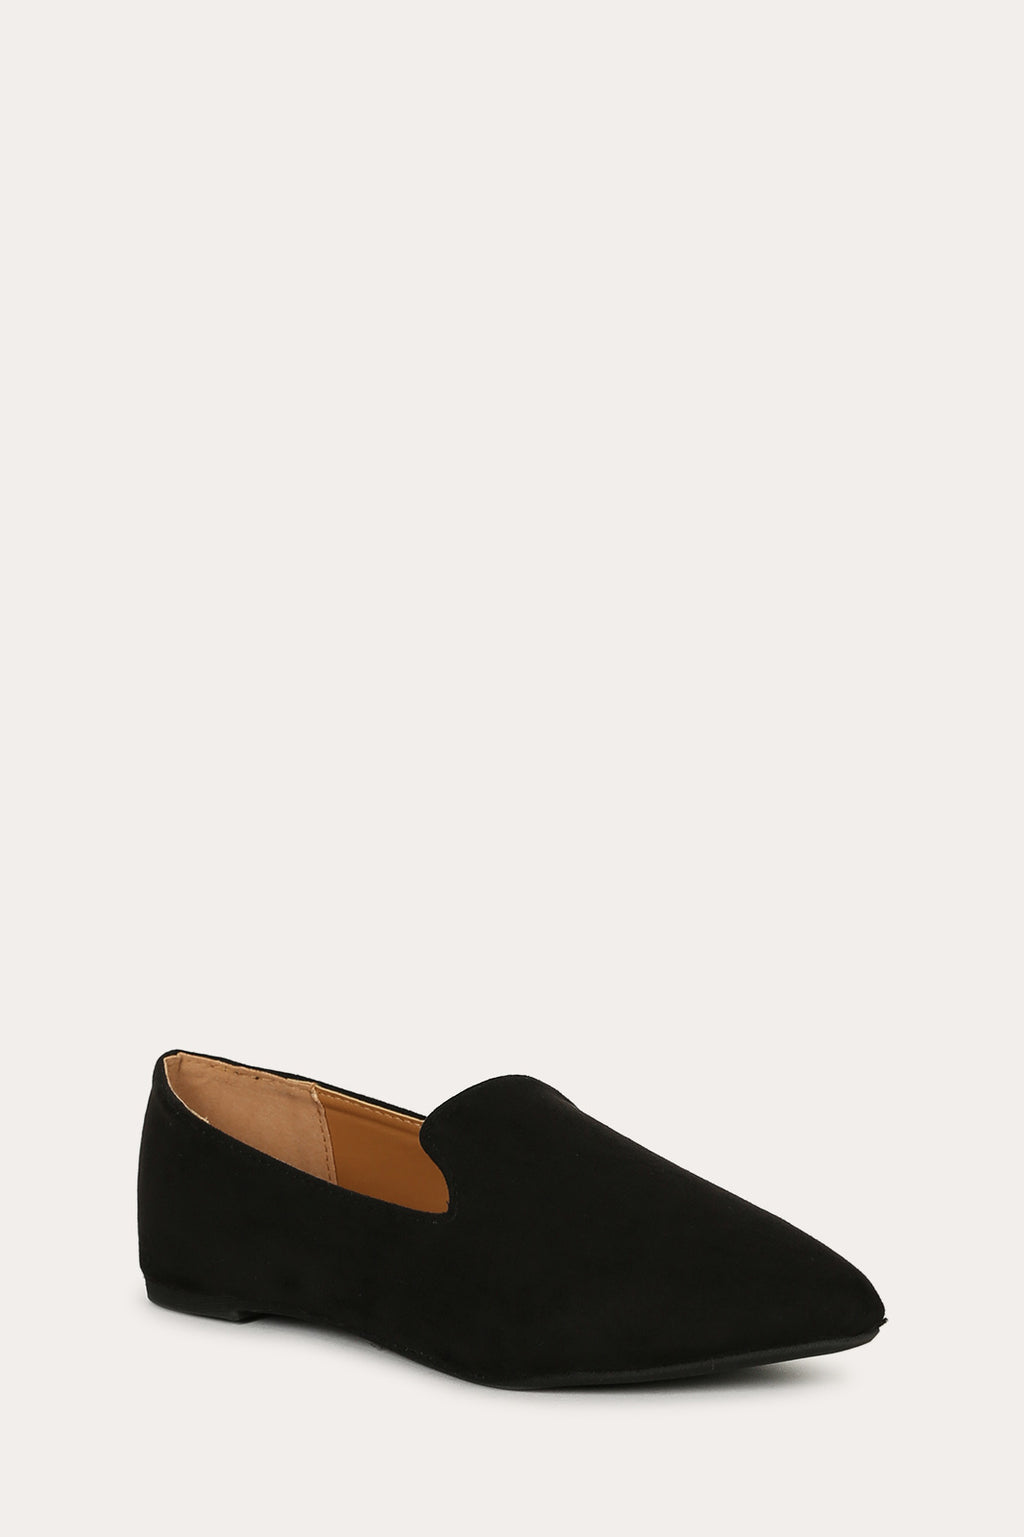 Making Moves - Black Loafer Flats